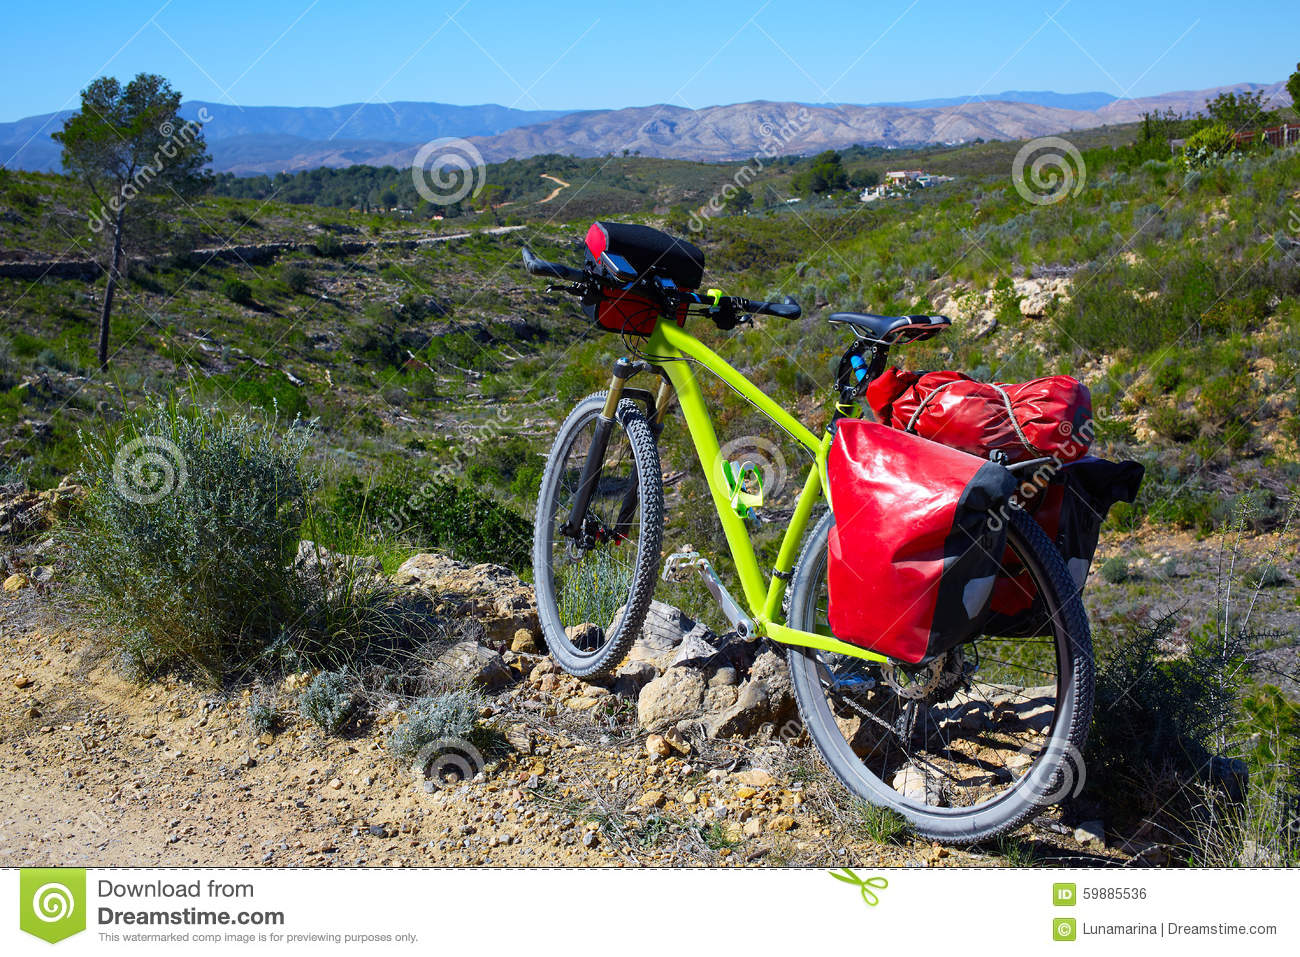 Cycling tourism MTB bike in Pedralba Valencia with panniers